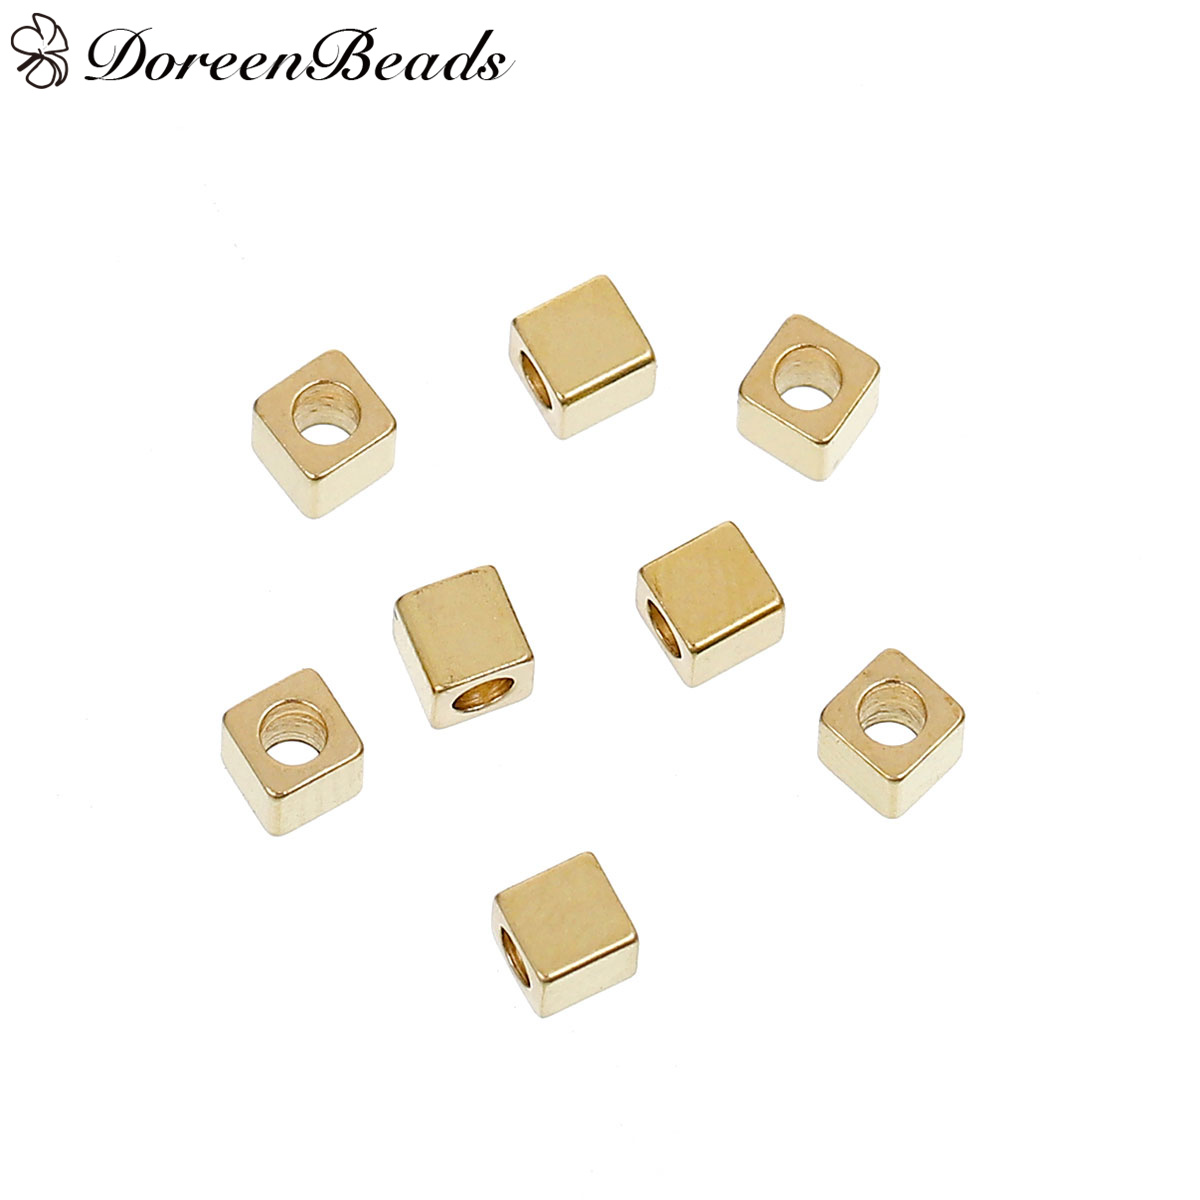 Jewelry & Accessories d376 10 Pieces 5.5mm Hole 3mm 24k Champagne Gold Color Brass Cube Cross Large Hole Beads Spacer Beads High Quality Accessories Cheap Sales